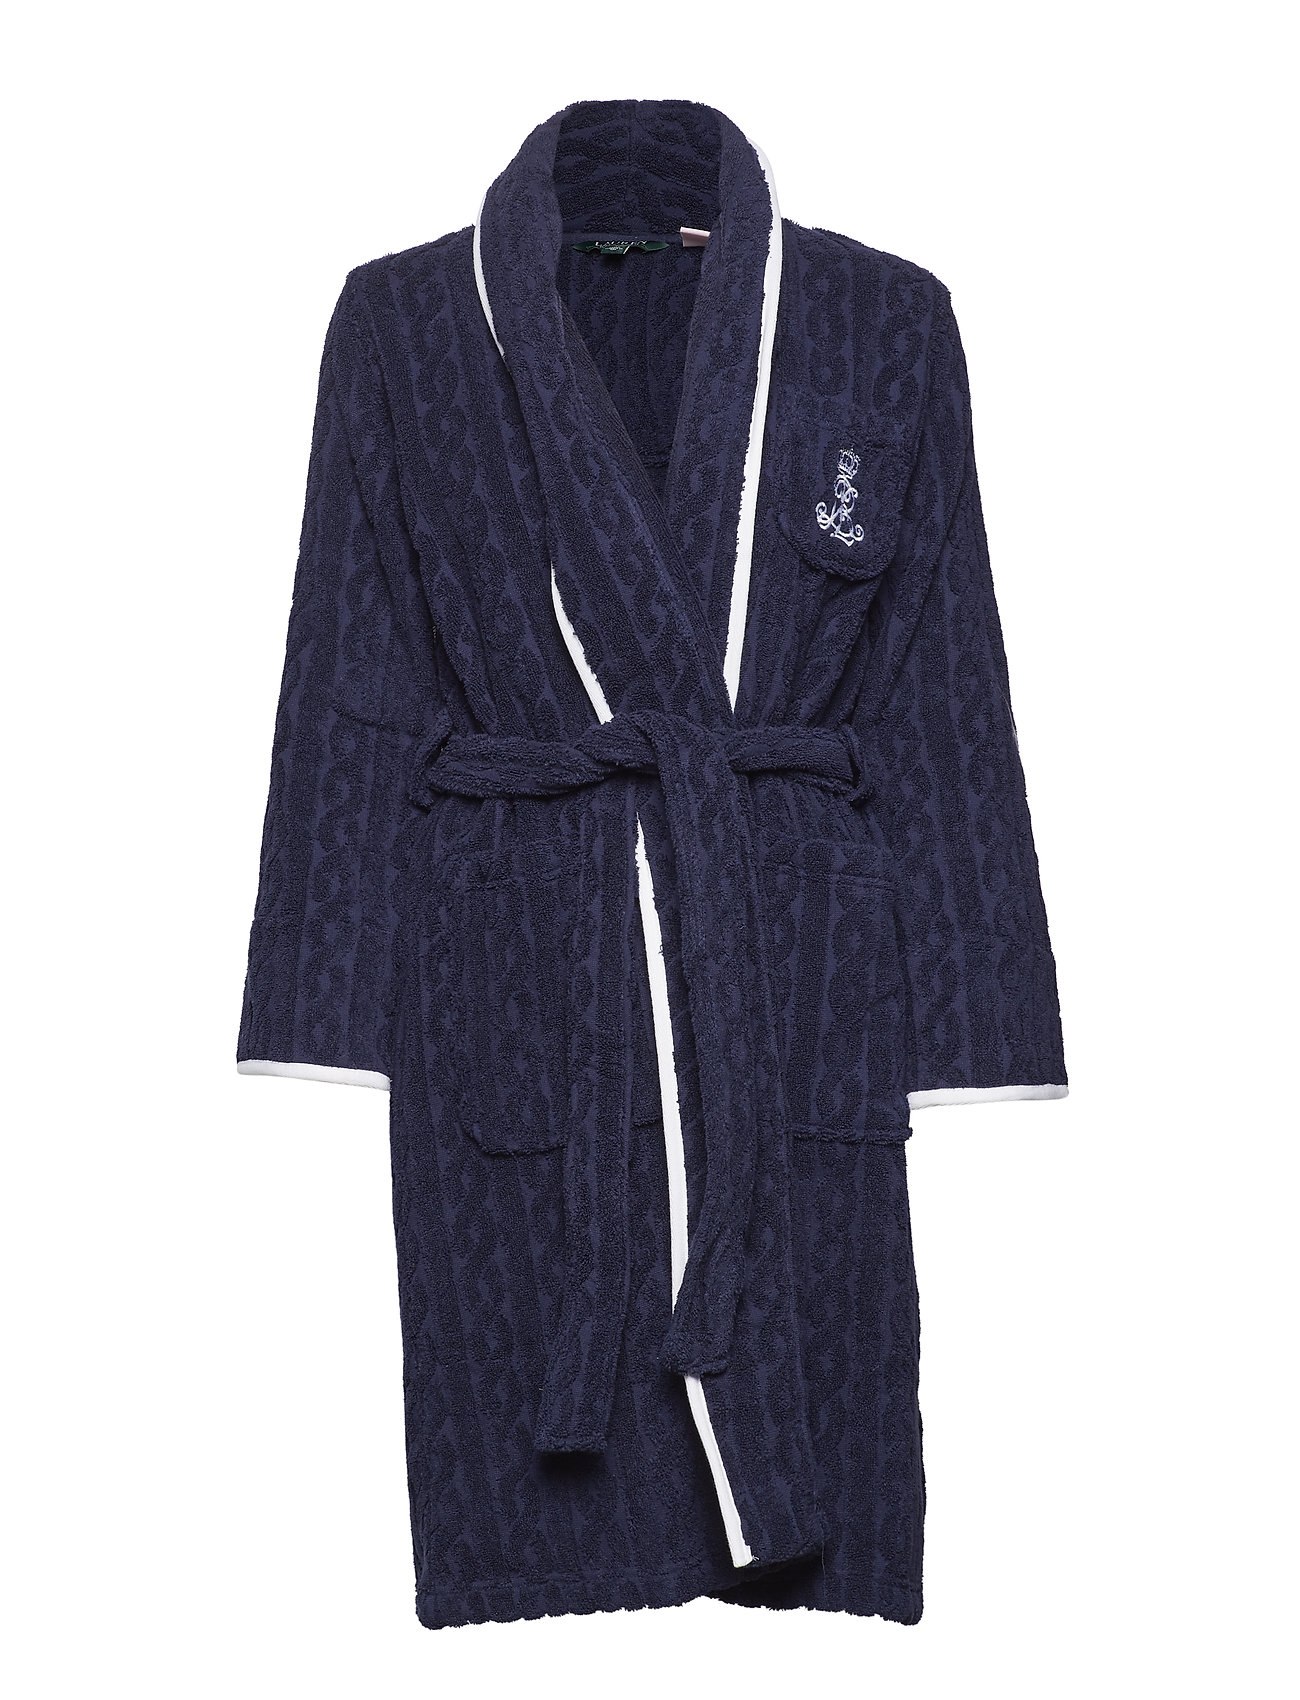 Lauren Ralph Lauren Homewear LRL CABLE TERRY SHAWL COLLAR ROBE - NAVY